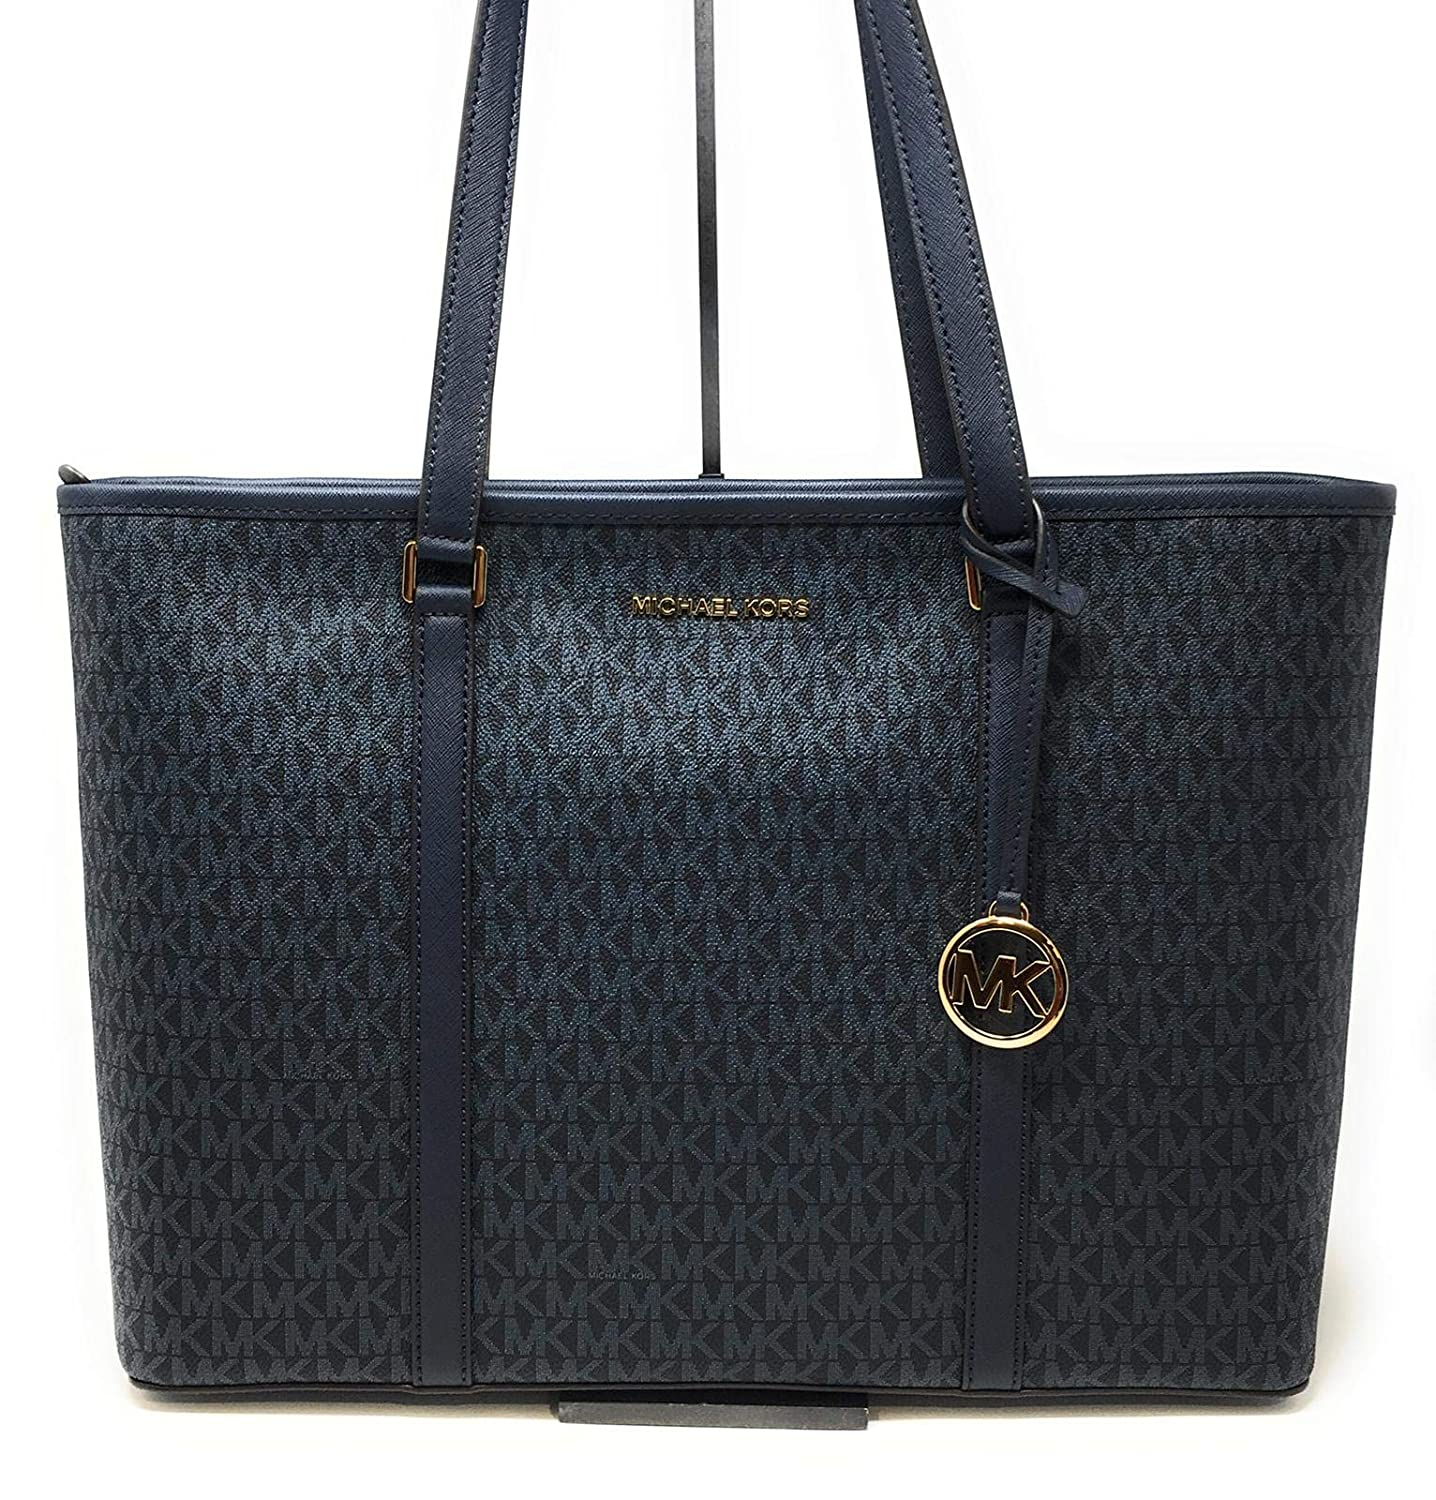 michael kors handbags fake